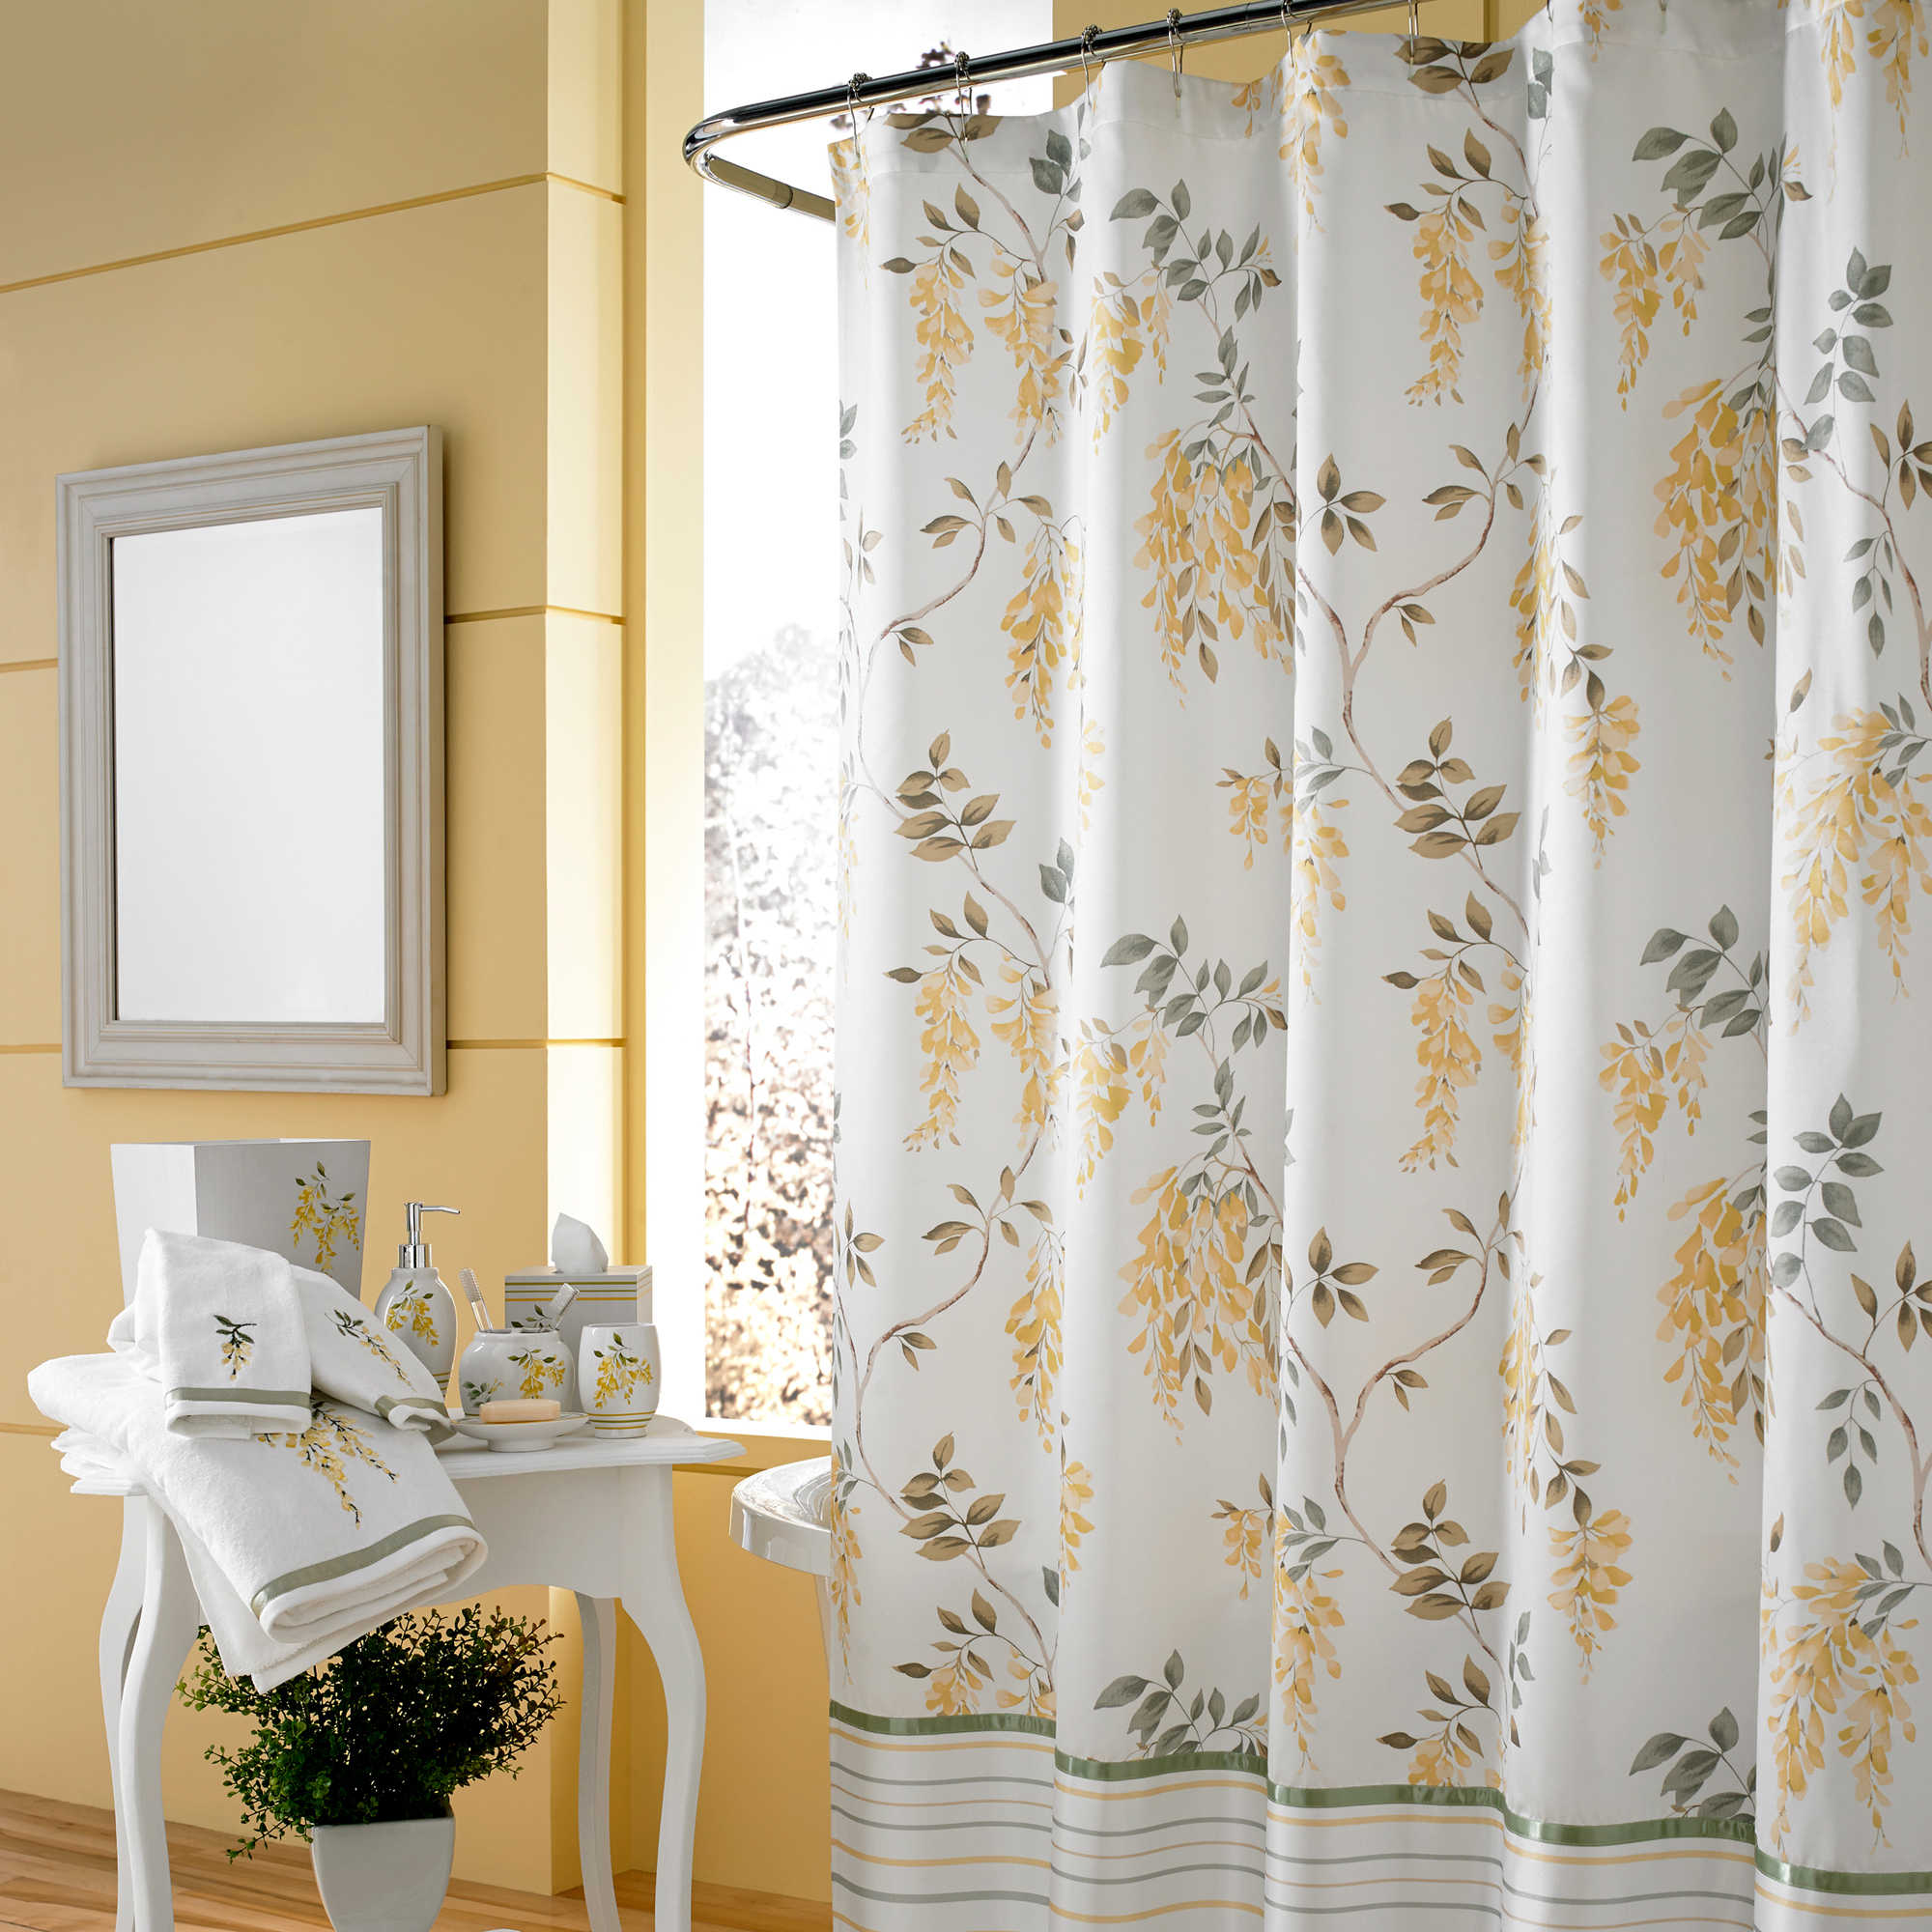 Bed Bath And Beyond Shower Curtains Offer Great Look